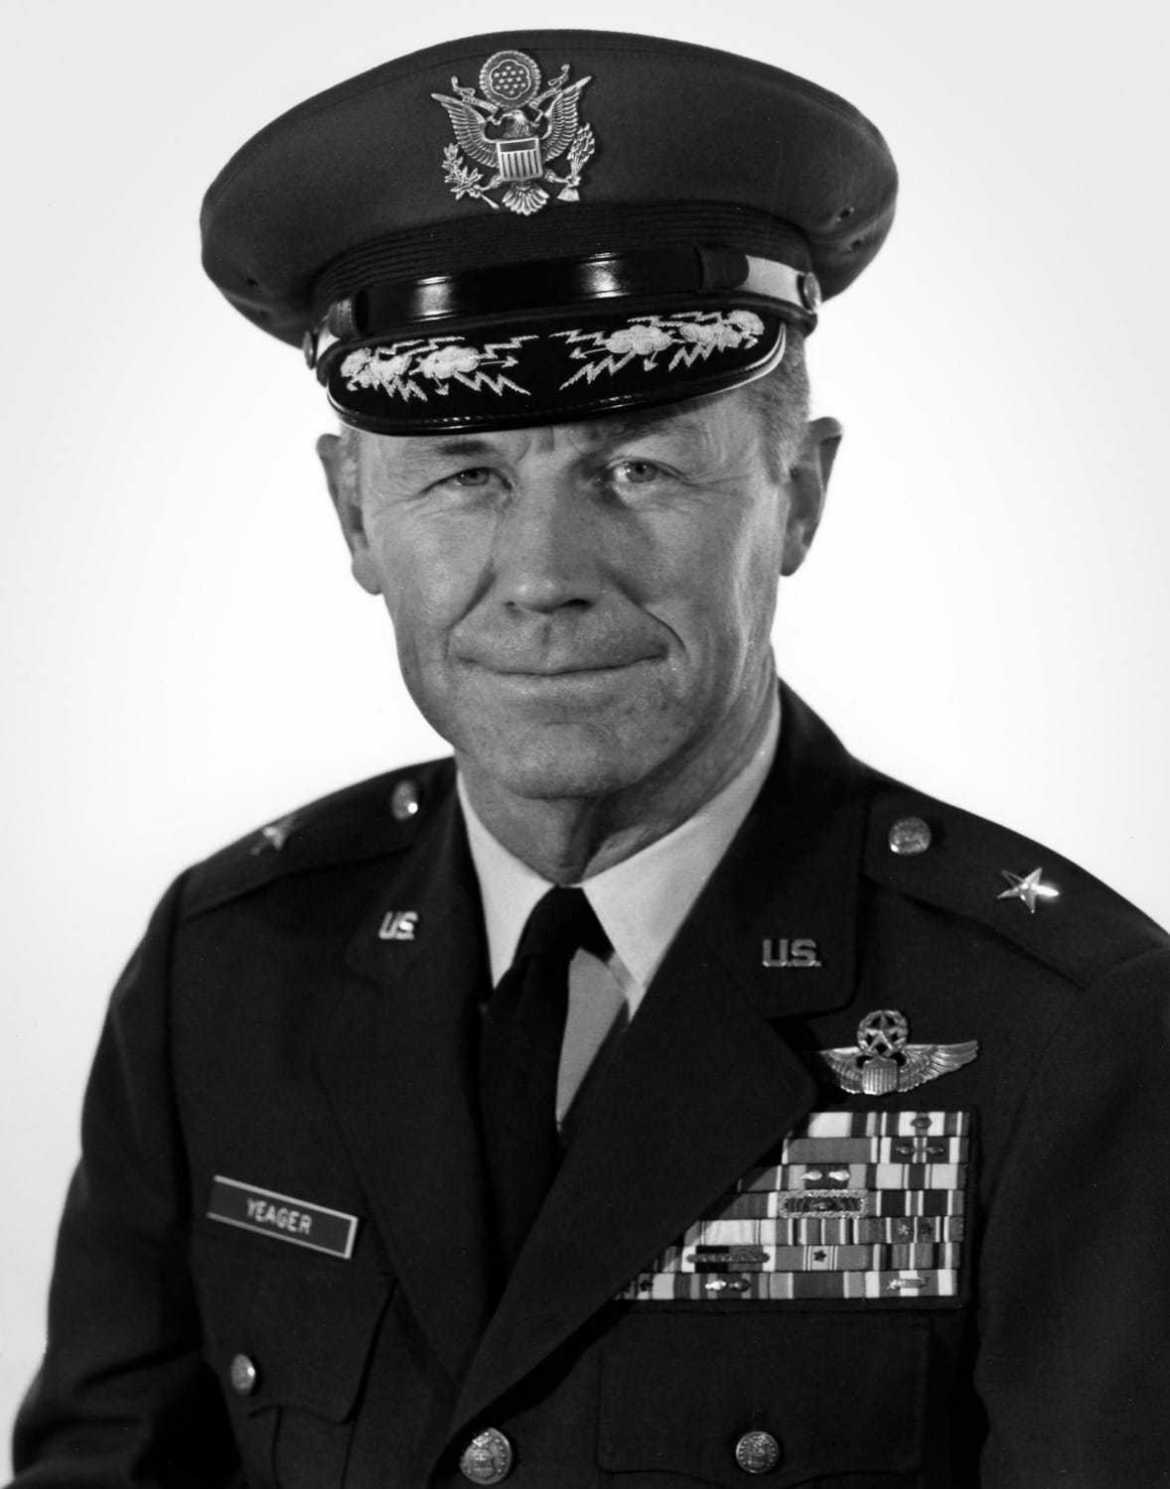 """Chuck Yeager """"width ="""" 1178 """"height ="""" 1500 """"srcset ="""" https://i1.wp.com/www.mybuckhannon.com/wp-content/uploads/2019/02/ChuckYeager.jpg?w=1170&ssl=1 1178w, https://www.mybuckhannon.com /wp-content/uploads/2019/02/ChuckYeager-236x300.jpg 236w, https://www.mybuckhannon.com/wp-content/uploads/2019/02/ChuckYeager-768x978.jpg 768w, https: // www .mybuckhannon.com / wp-content / uploads / 2019/02 / ChuckYeager-804x1024.jpg 804w, https://www.mybuckhannon.com/wp-content/uploads/2019/02/ChuckYeager-696x886.jpg 696w, https : //www.mybuckhannon.com/wp-content/uploads/2019/02/ChuckYeager-1068x1360.jpg 1068w, https://www.mybuckhannon.com/wp-content/uploads/2019/02/ChuckYeager-330x420. jpg 330w, https://www.mybuckhannon.com/wp-content/uploads/2019/02/ChuckYeager-600x764.jpg 600w """"sizes ="""" (max-width: 1178px) 100vw, 1178px"""